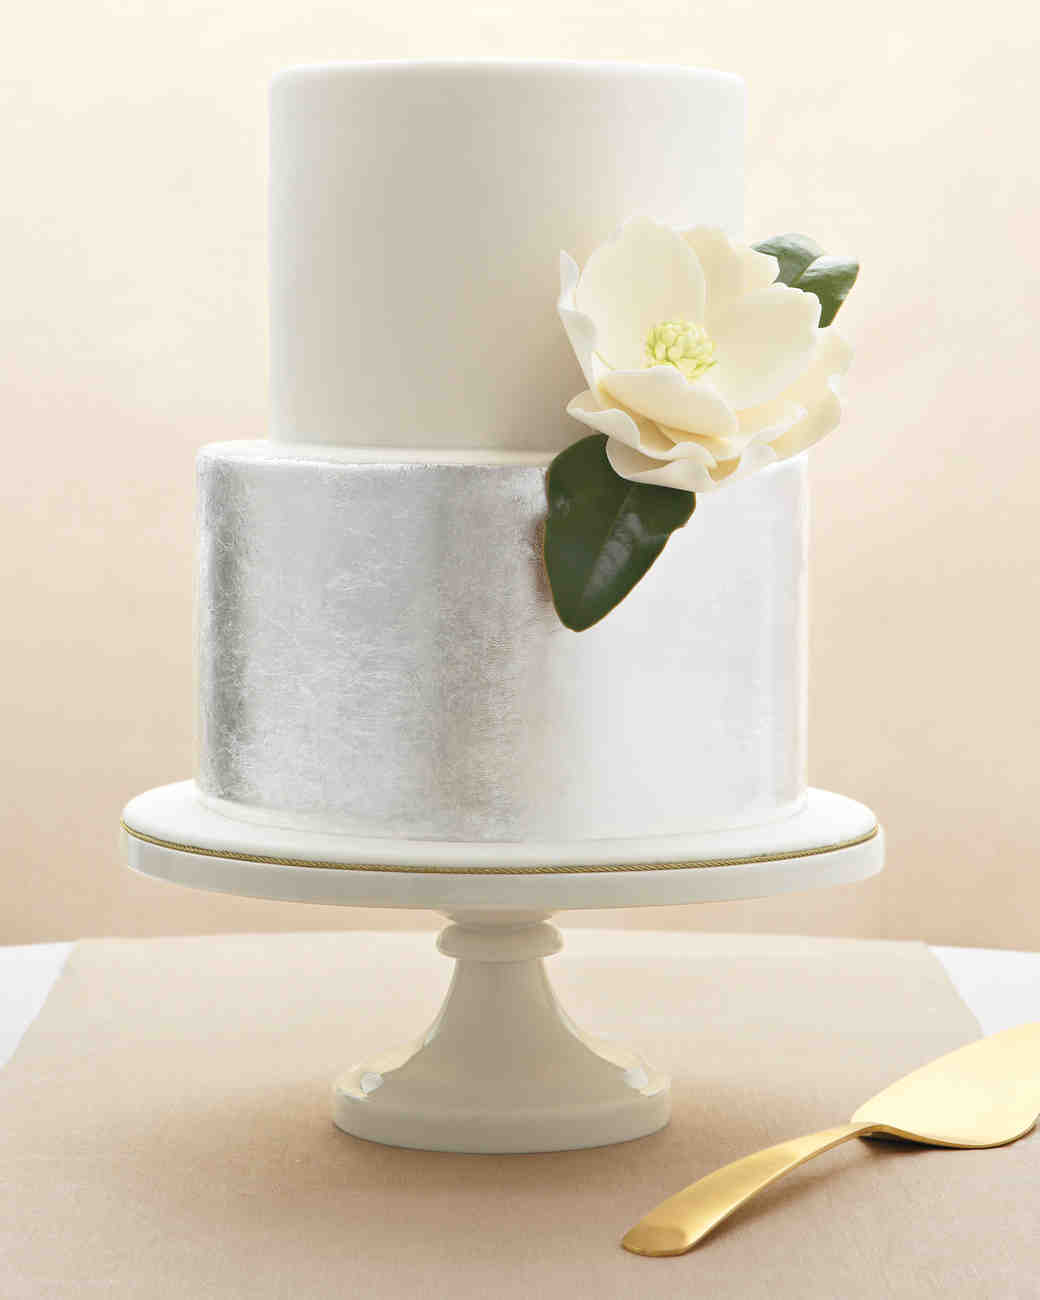 Fondant Cakes from Real Weddings | Martha Stewart Weddings